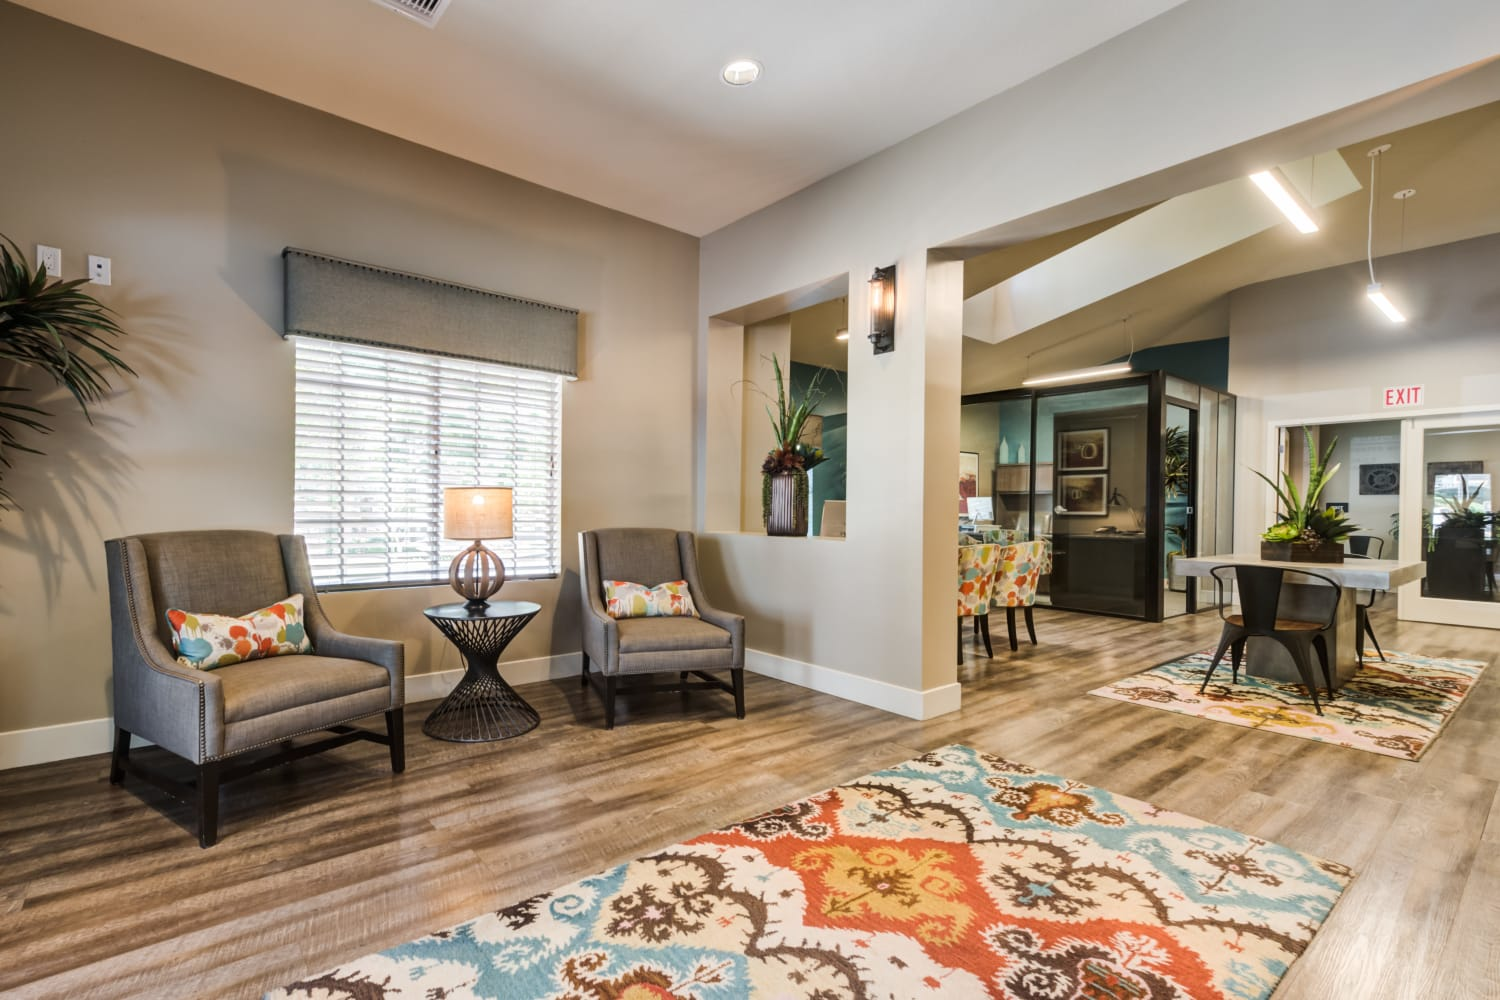 Well decorated living area at Sierra Heights Apartments in Rancho Cucamonga, California